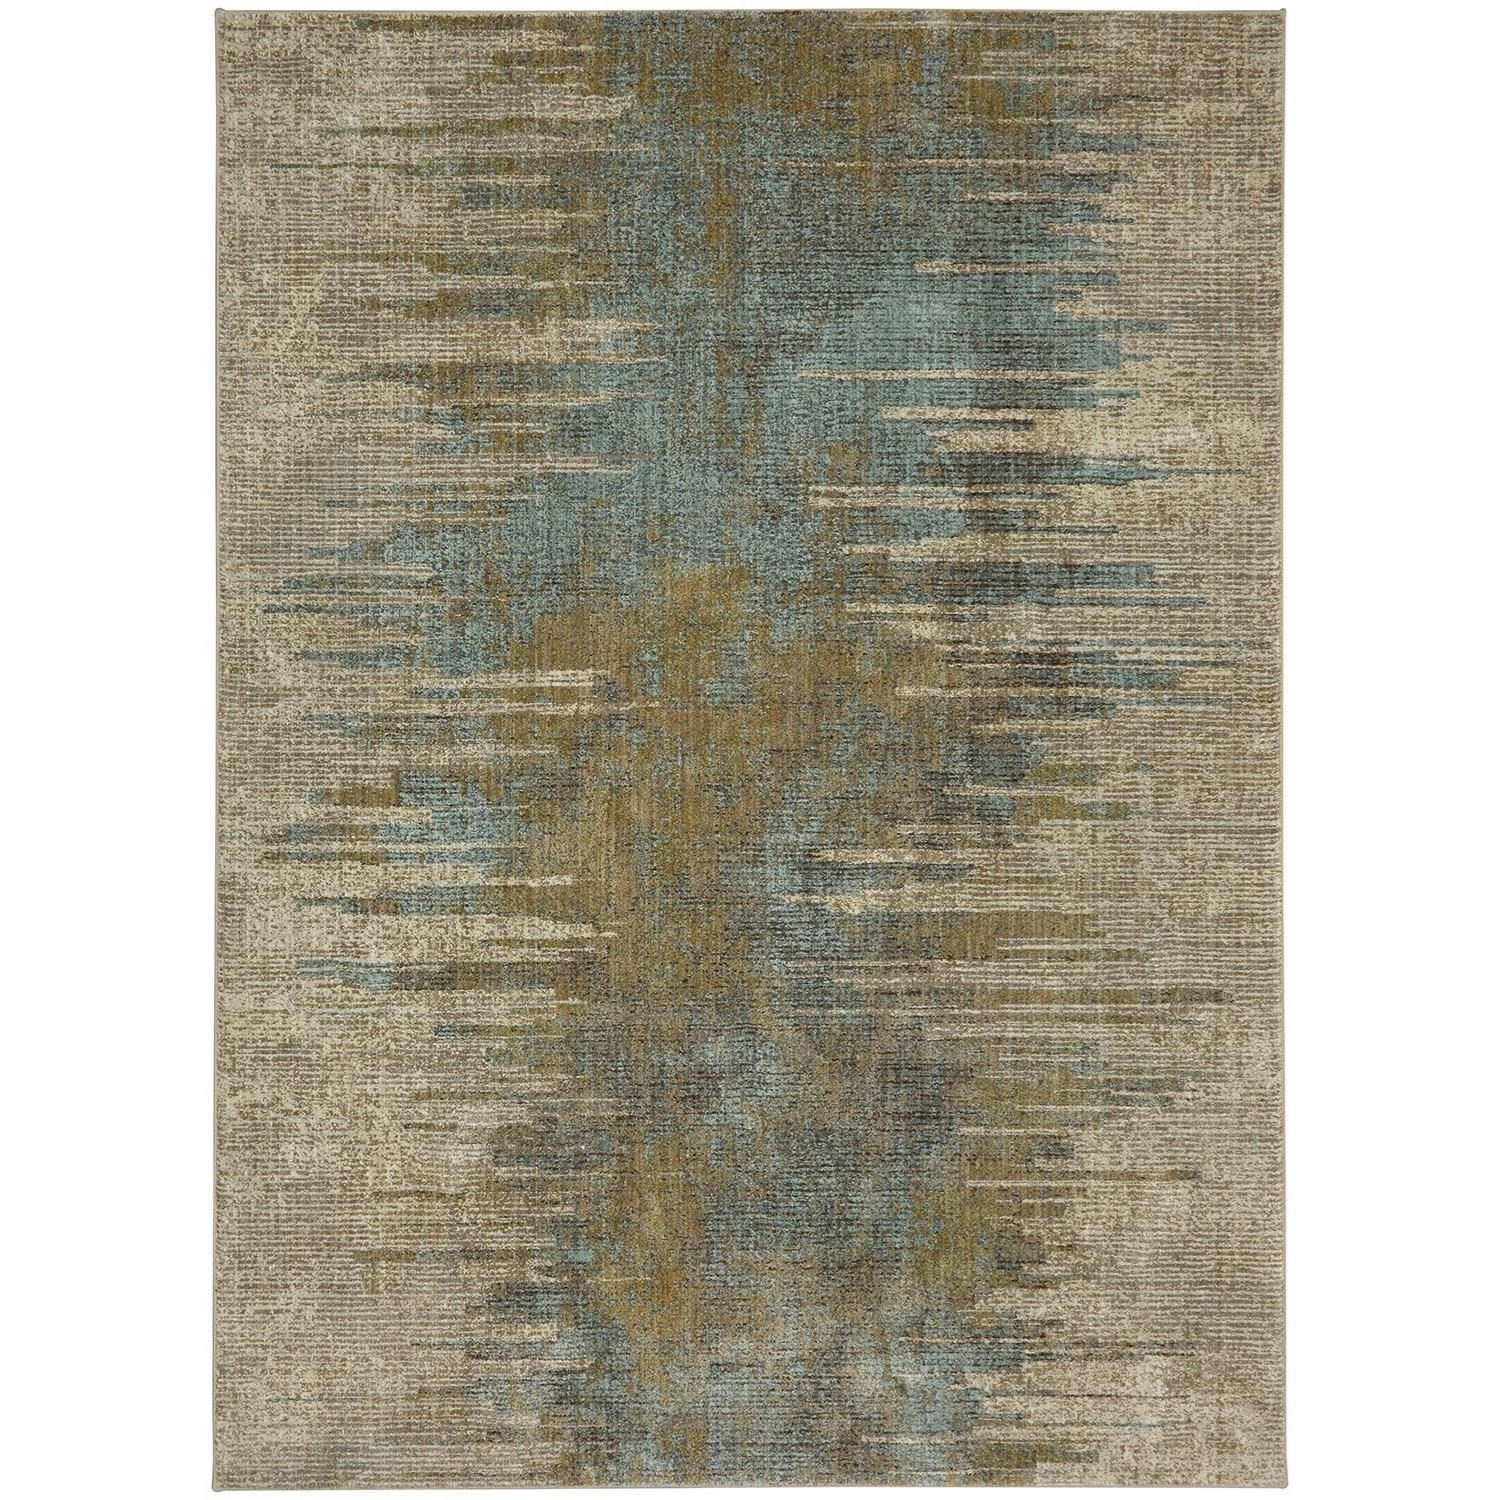 """Touchstone 5' 3""""x7' 10"""" Rectangle Abstract Area Rug by Karastan Rugs at Alison Craig Home Furnishings"""